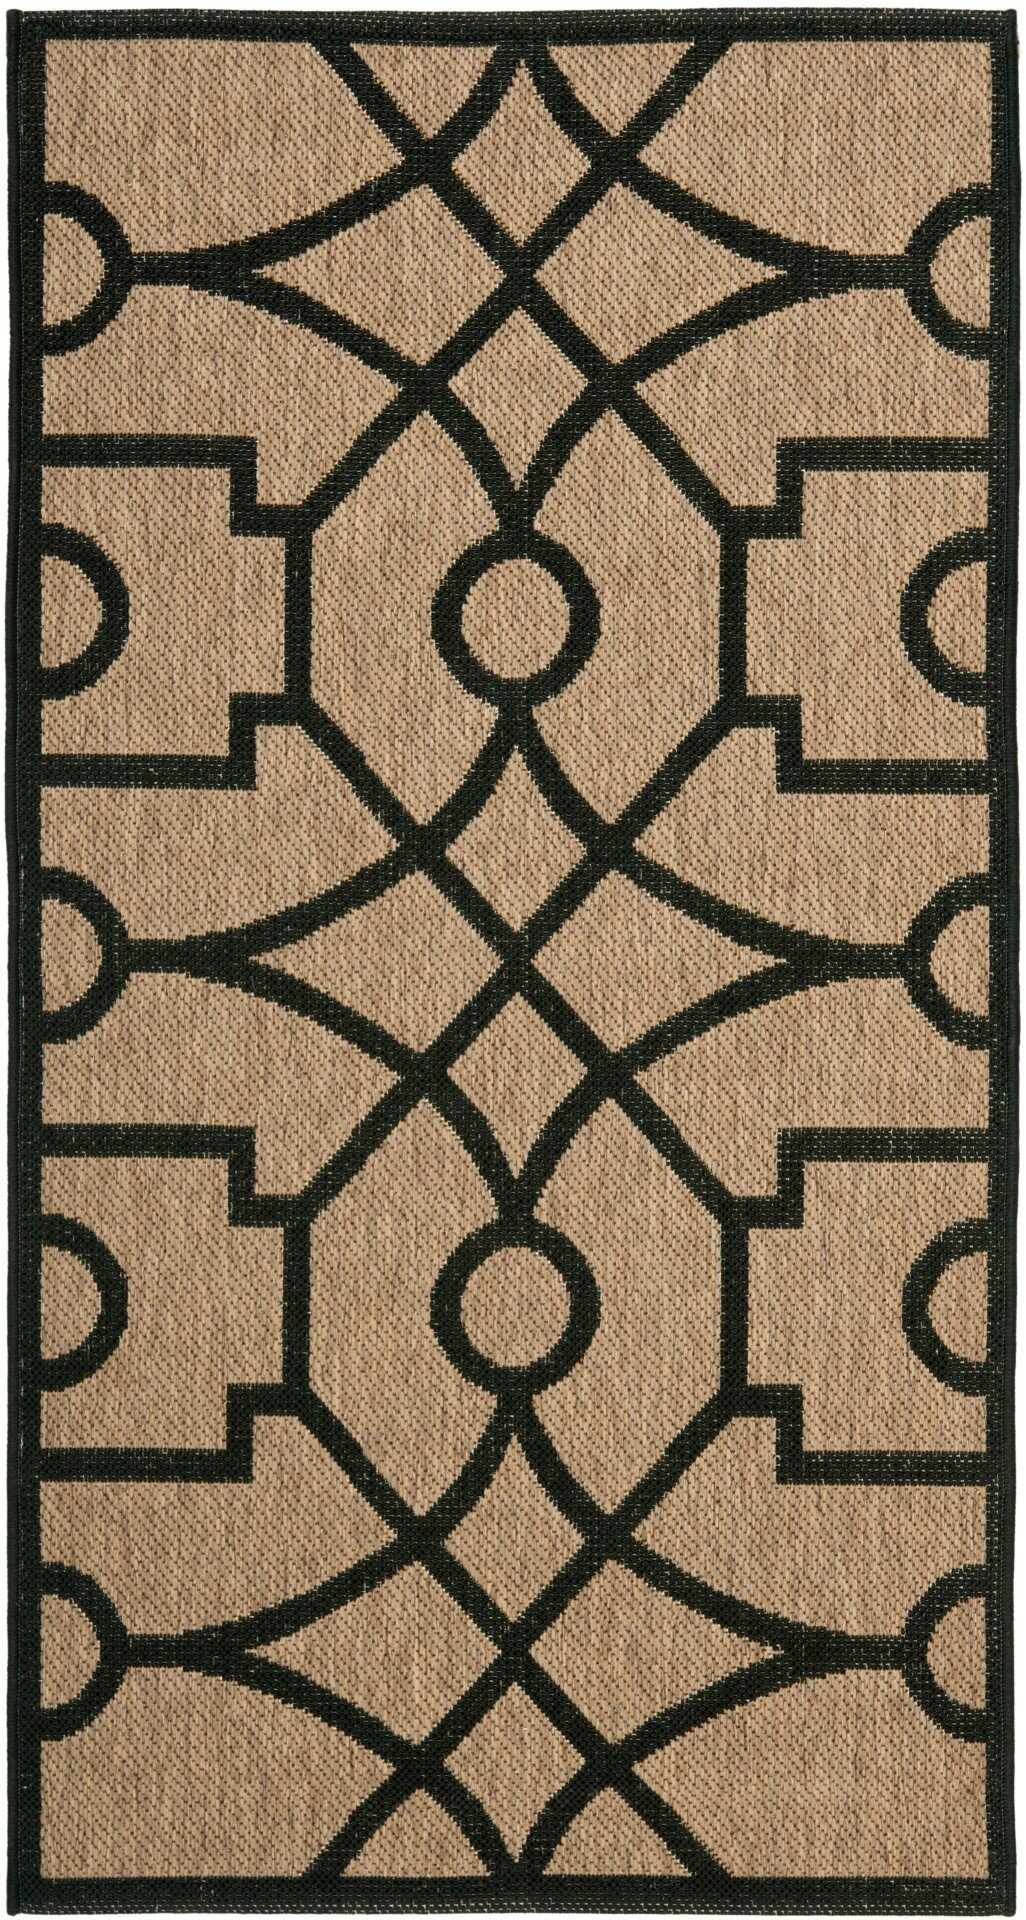 safavieh martha stewart fretwork tan black area rug ebay. Black Bedroom Furniture Sets. Home Design Ideas